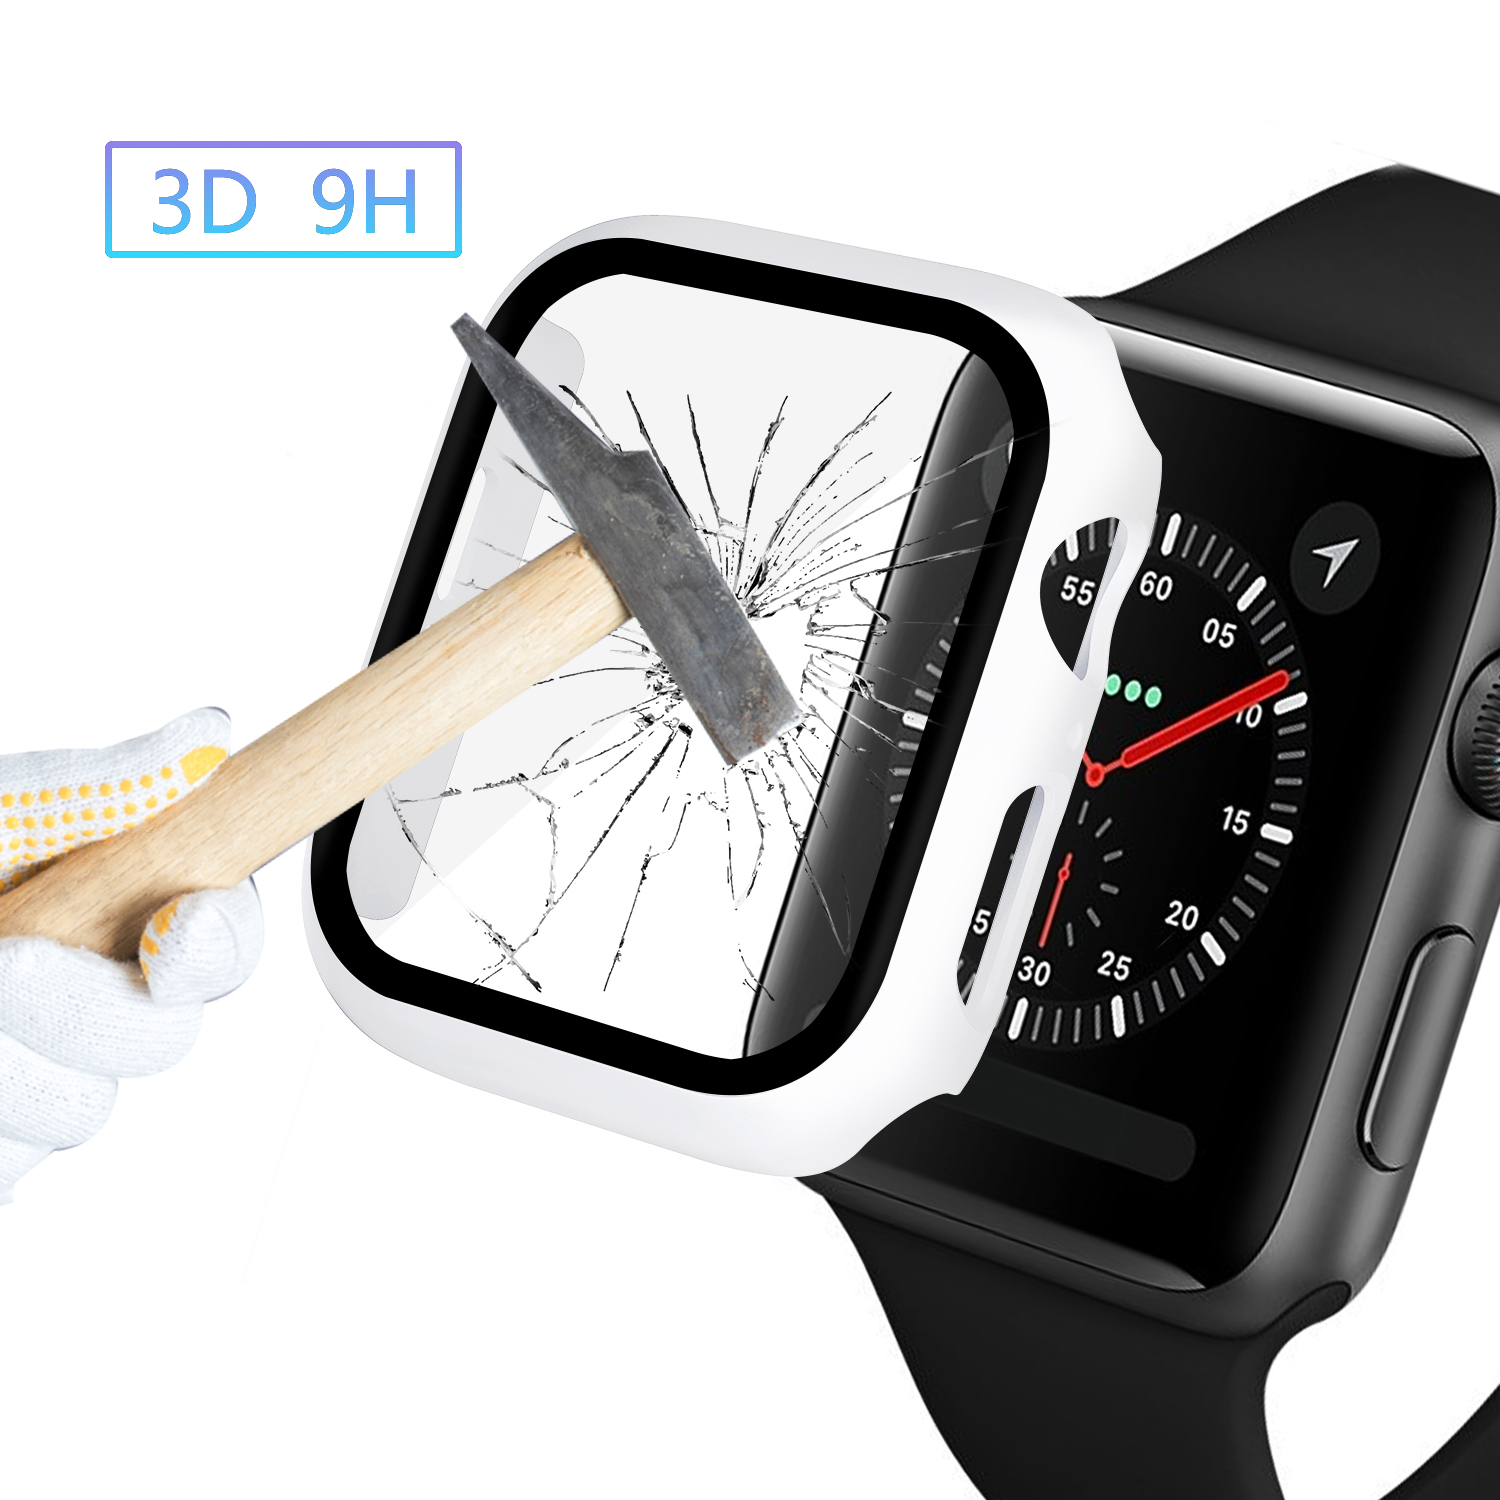 Watch Cover Case for Apple Watch 5/4 40MM/44MM PC Bumper with Glass Protector Film for iwatch Series 3/2 38 42MM  accessories 4